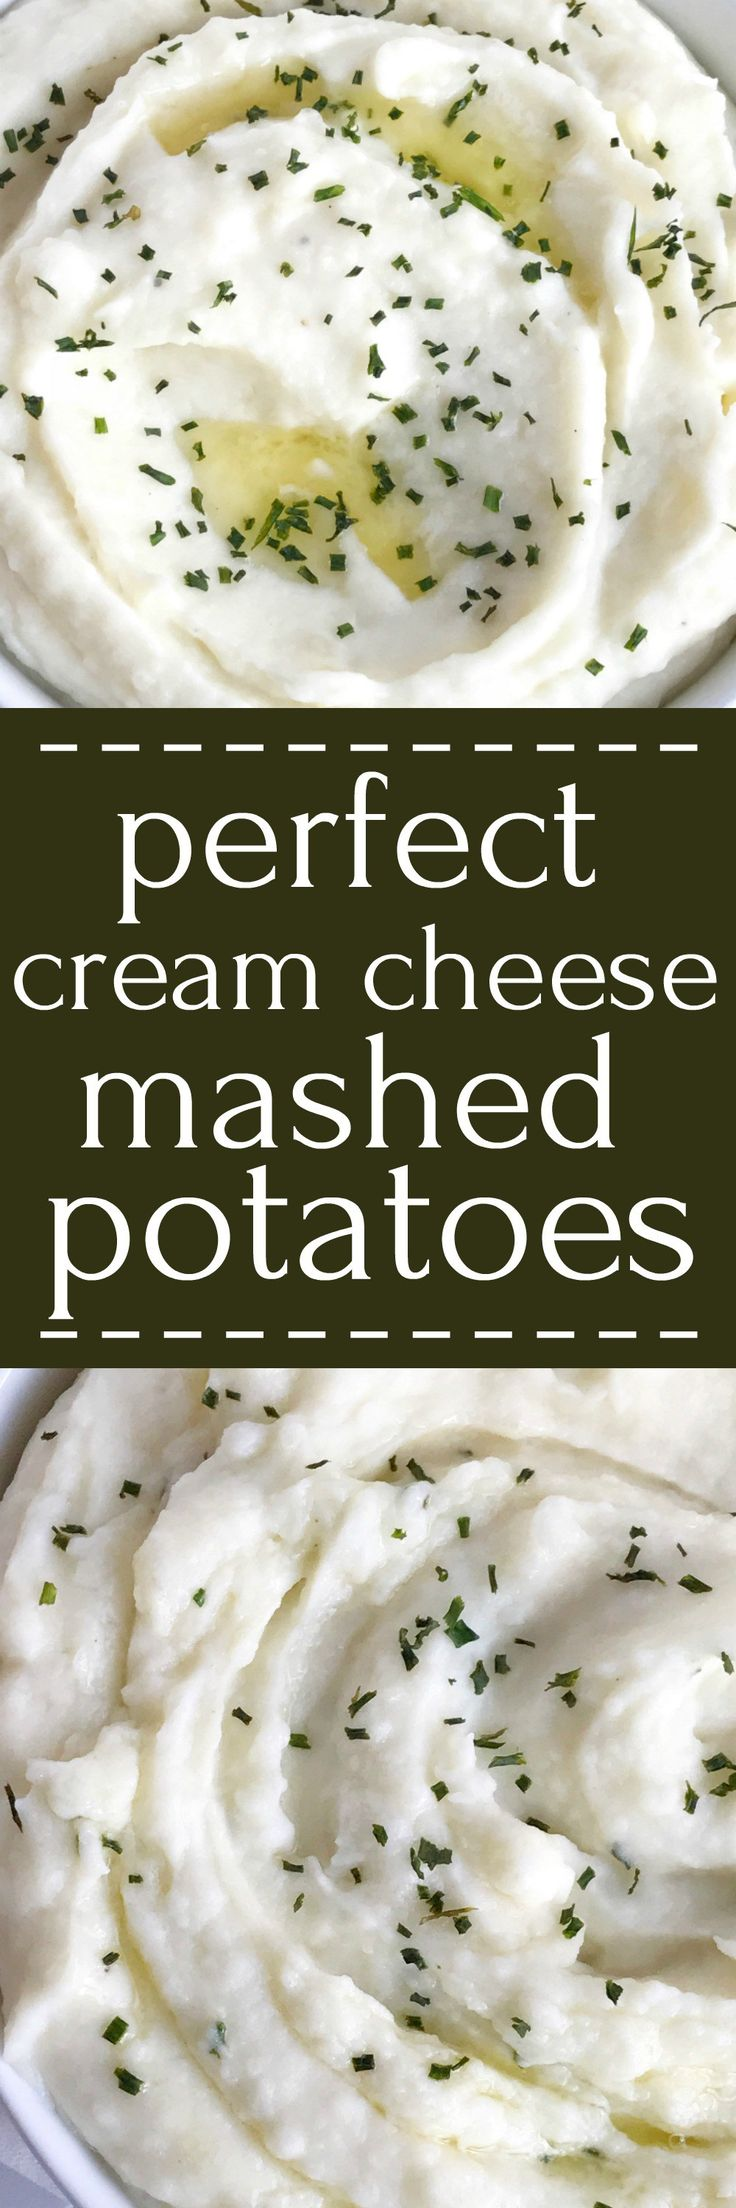 These are perfect cream cheese mashed potatoes. Only a few simple ingredients for creamy, smooth, and mashed potatoes that are full of flavor. A great side dish for Thanksgiving, dinner, or any special Holiday dinner